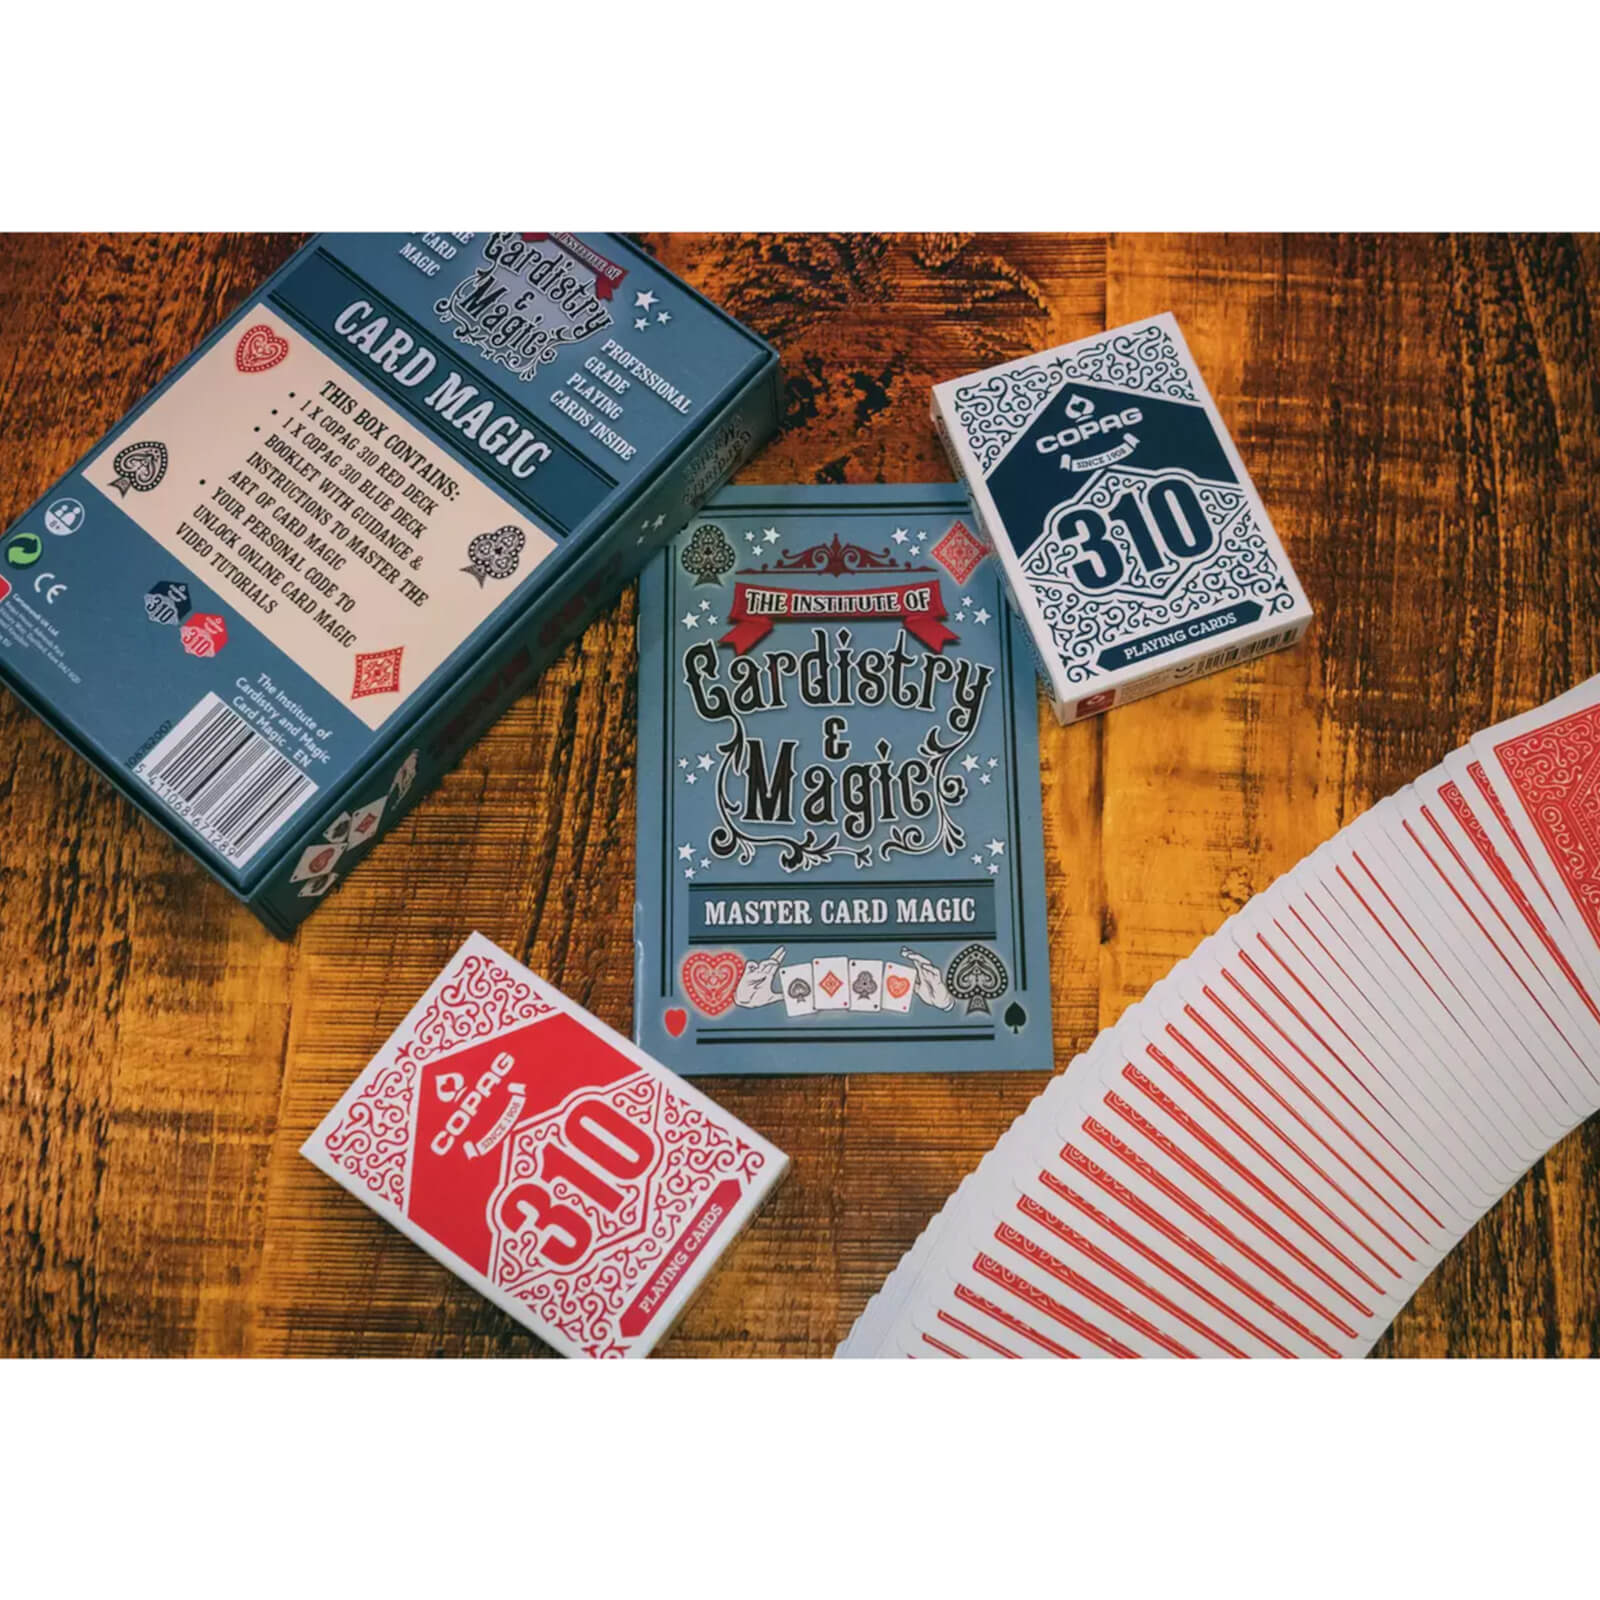 Image of The Institute of Cardistry & Magic - Card Tricks